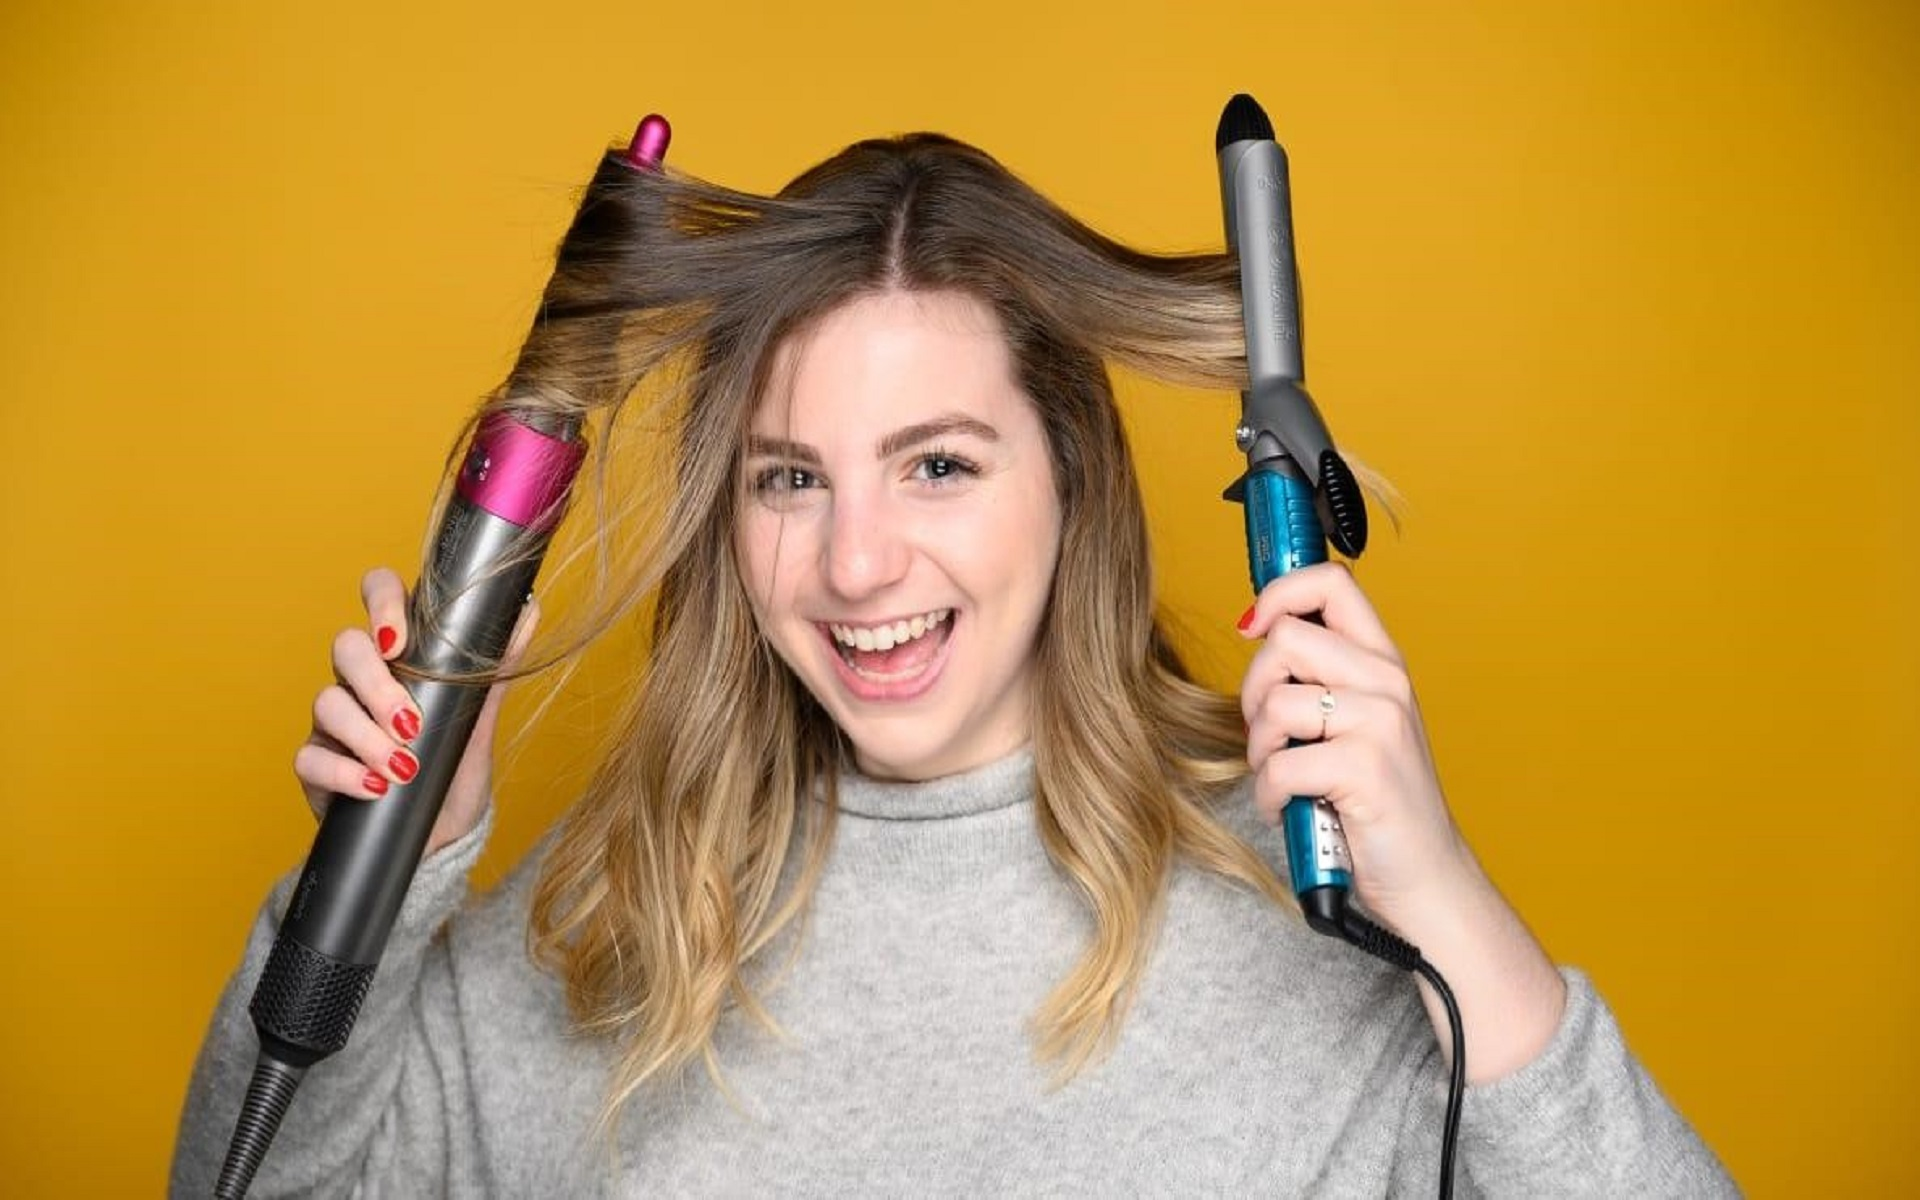 a Curling Iron Versus a Curling Wand